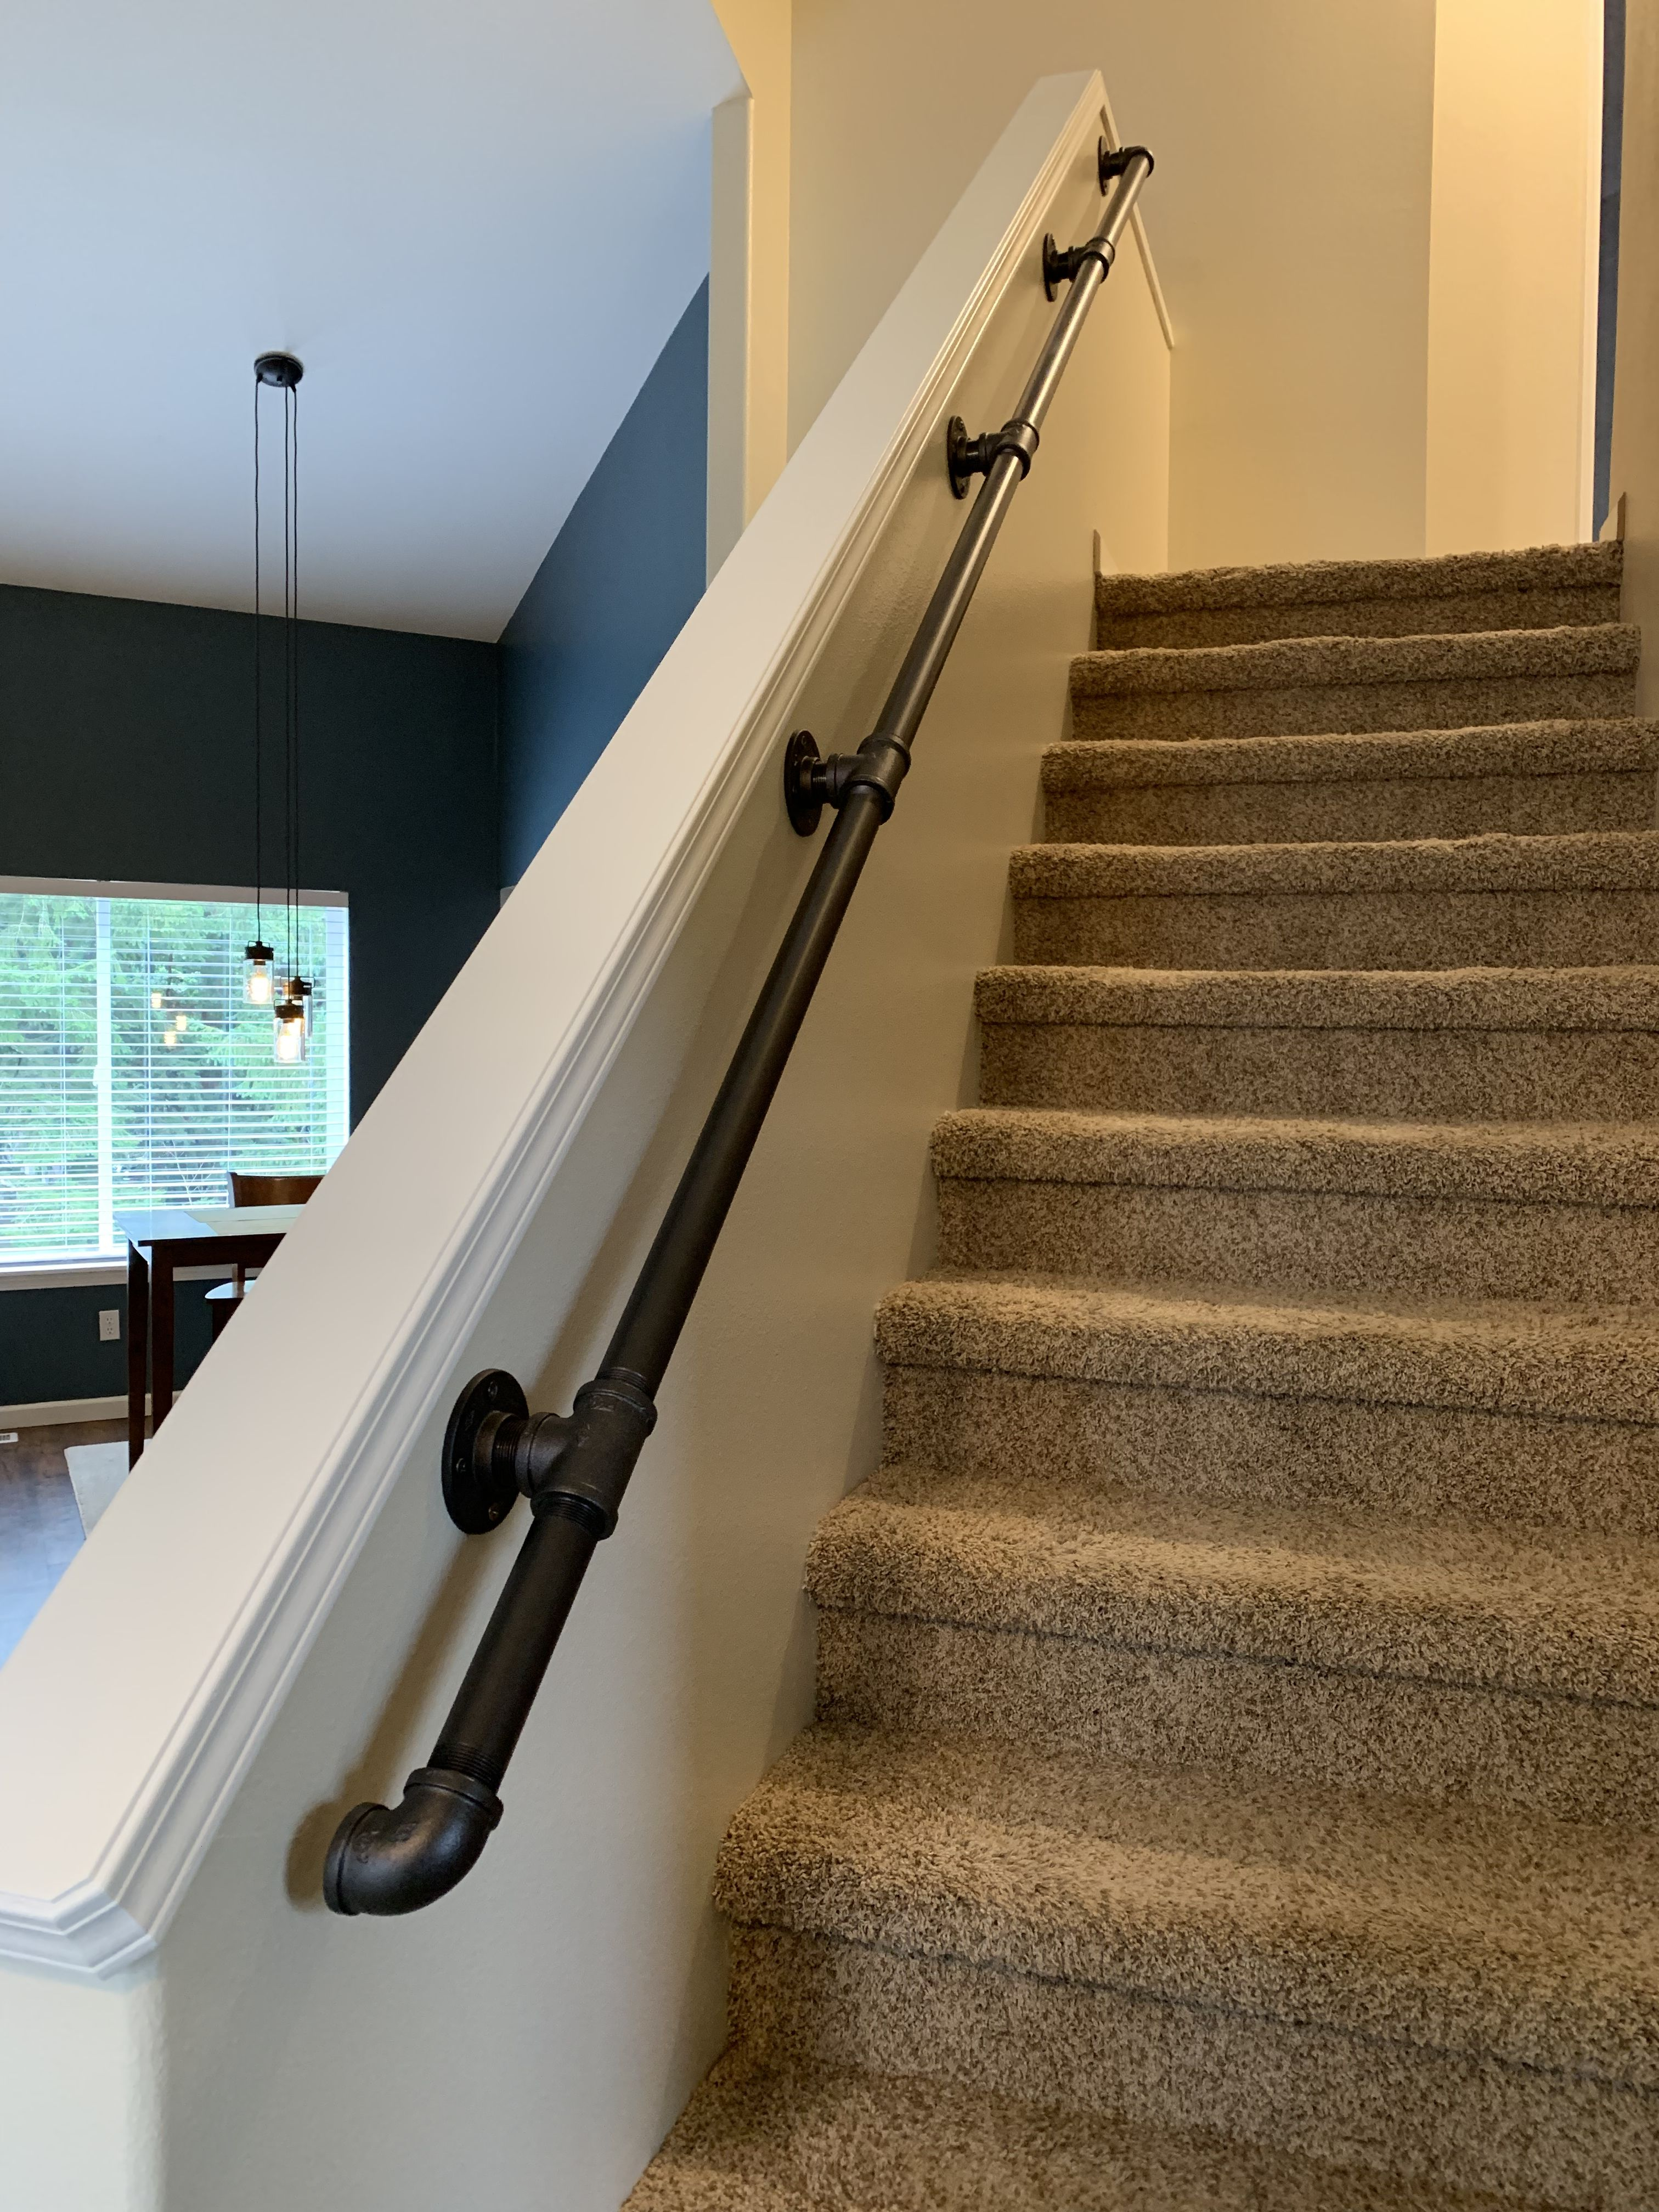 Pin On The Money Pit I Call Home   Black Iron Pipe Stair Railing   Staircase Railing   Industrial Style   Deck   Steel Pipe   Reclaimed Wood